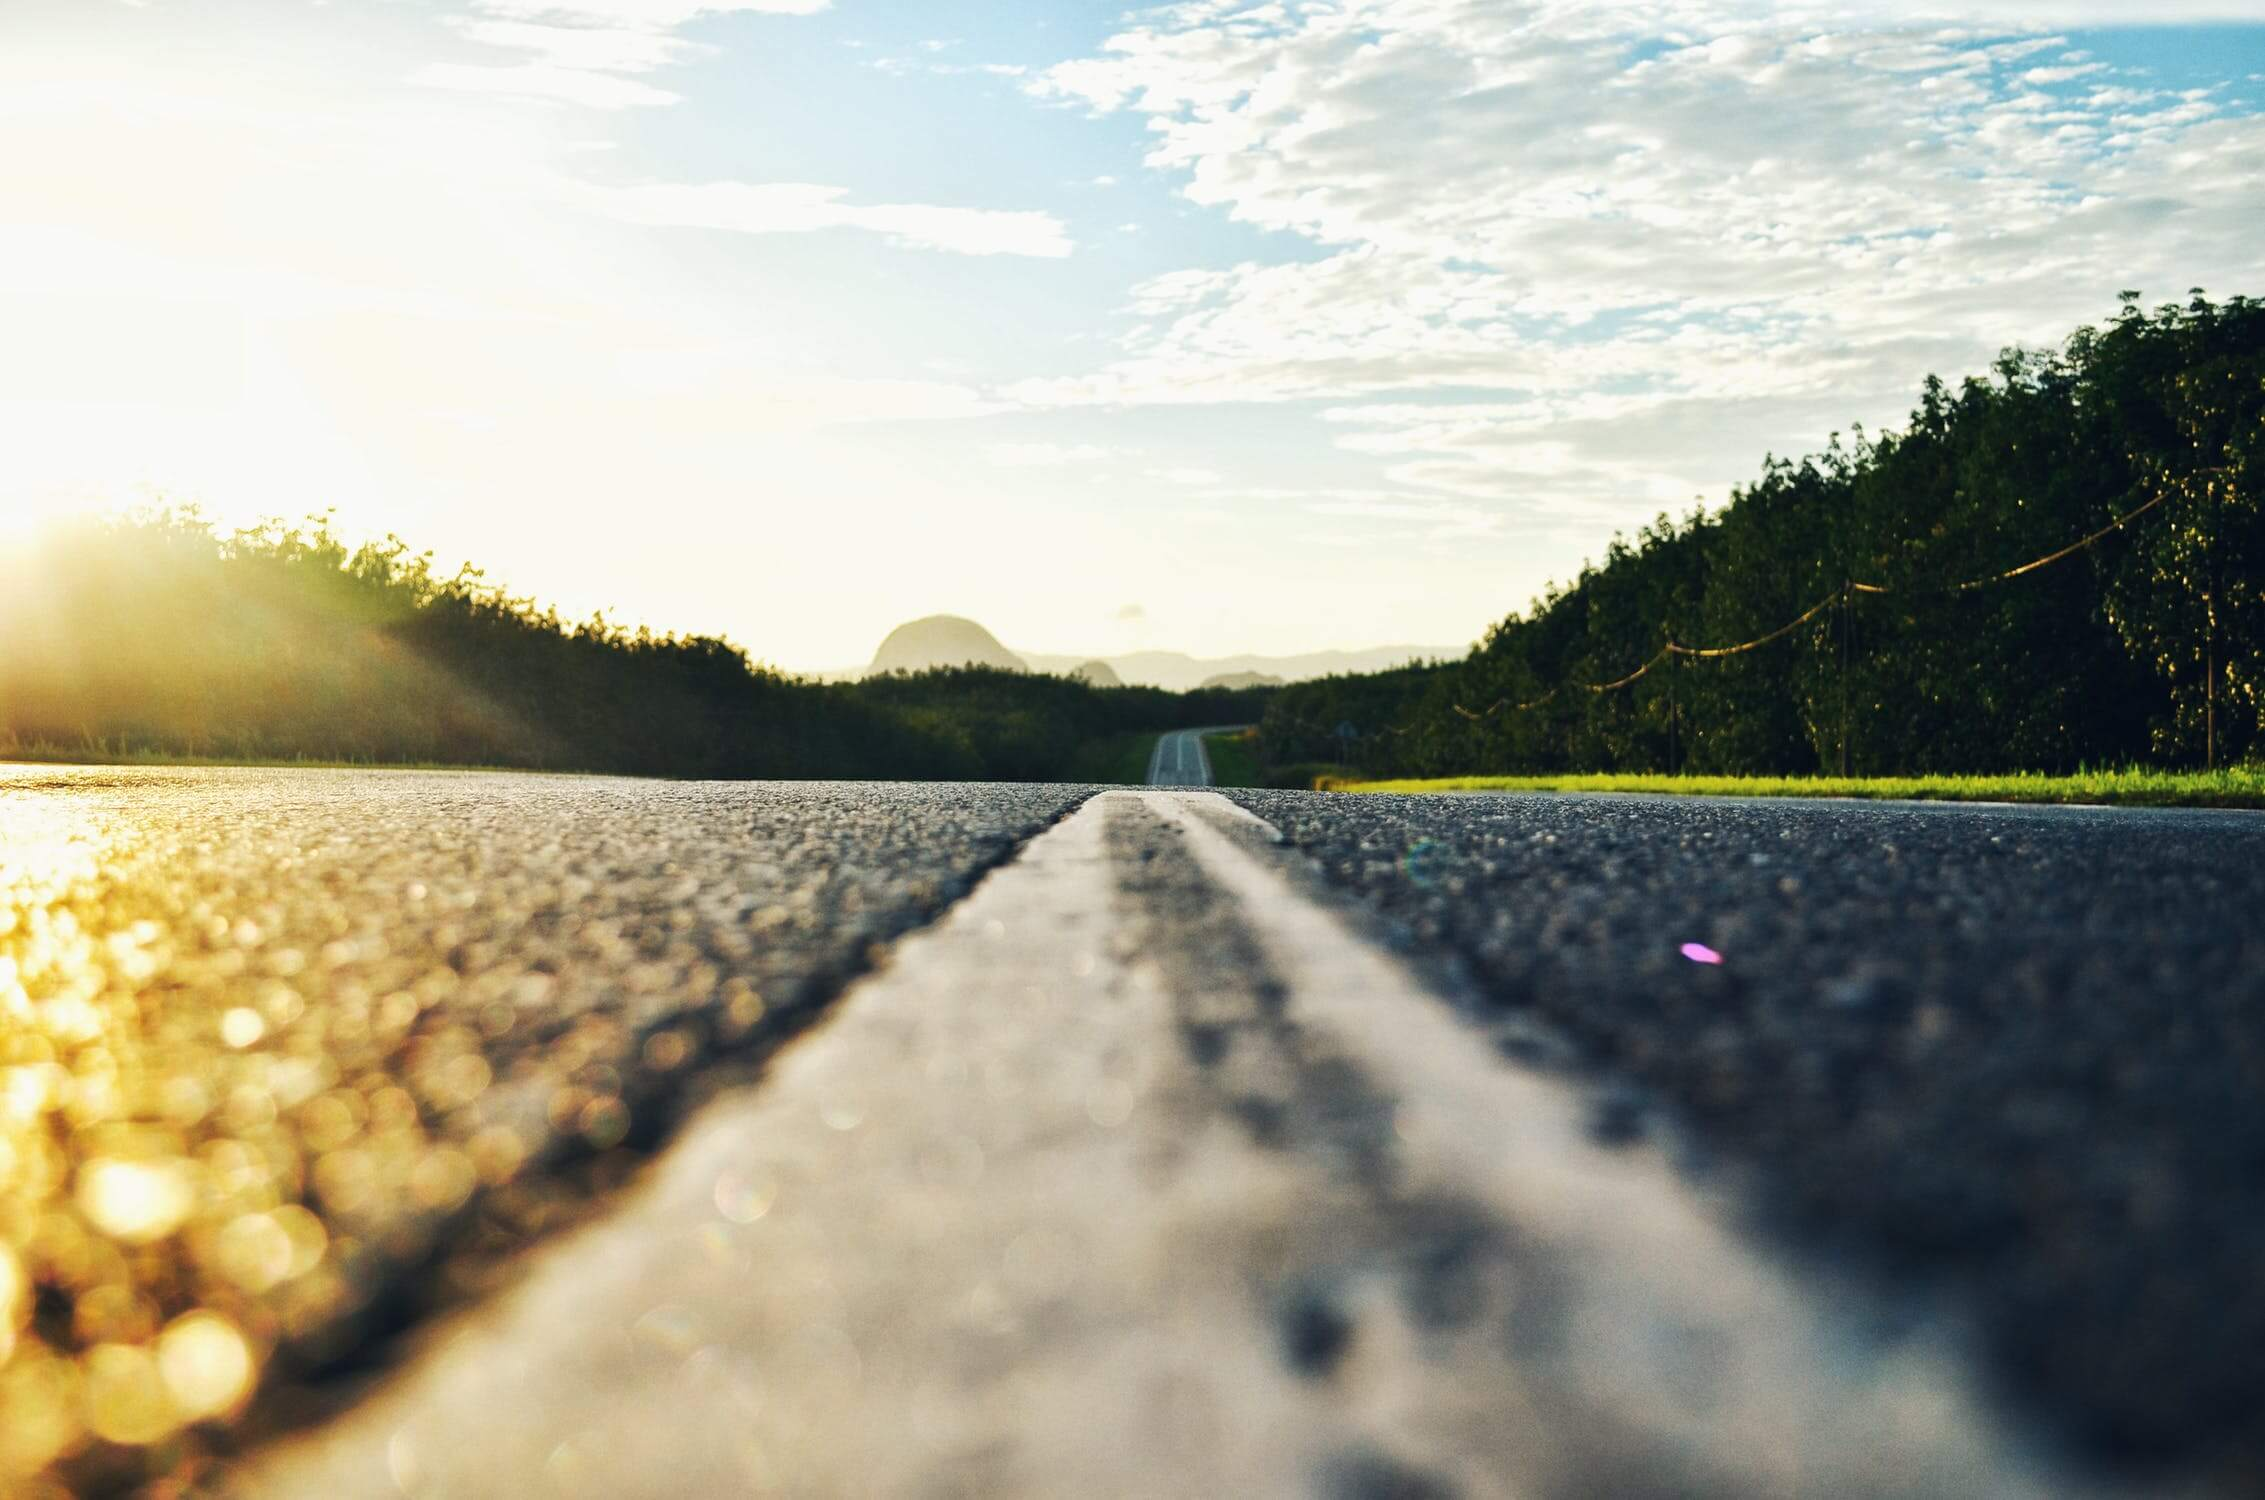 A ground-level view of the asphalt of a paved roadway, looking into hills on the horizon.